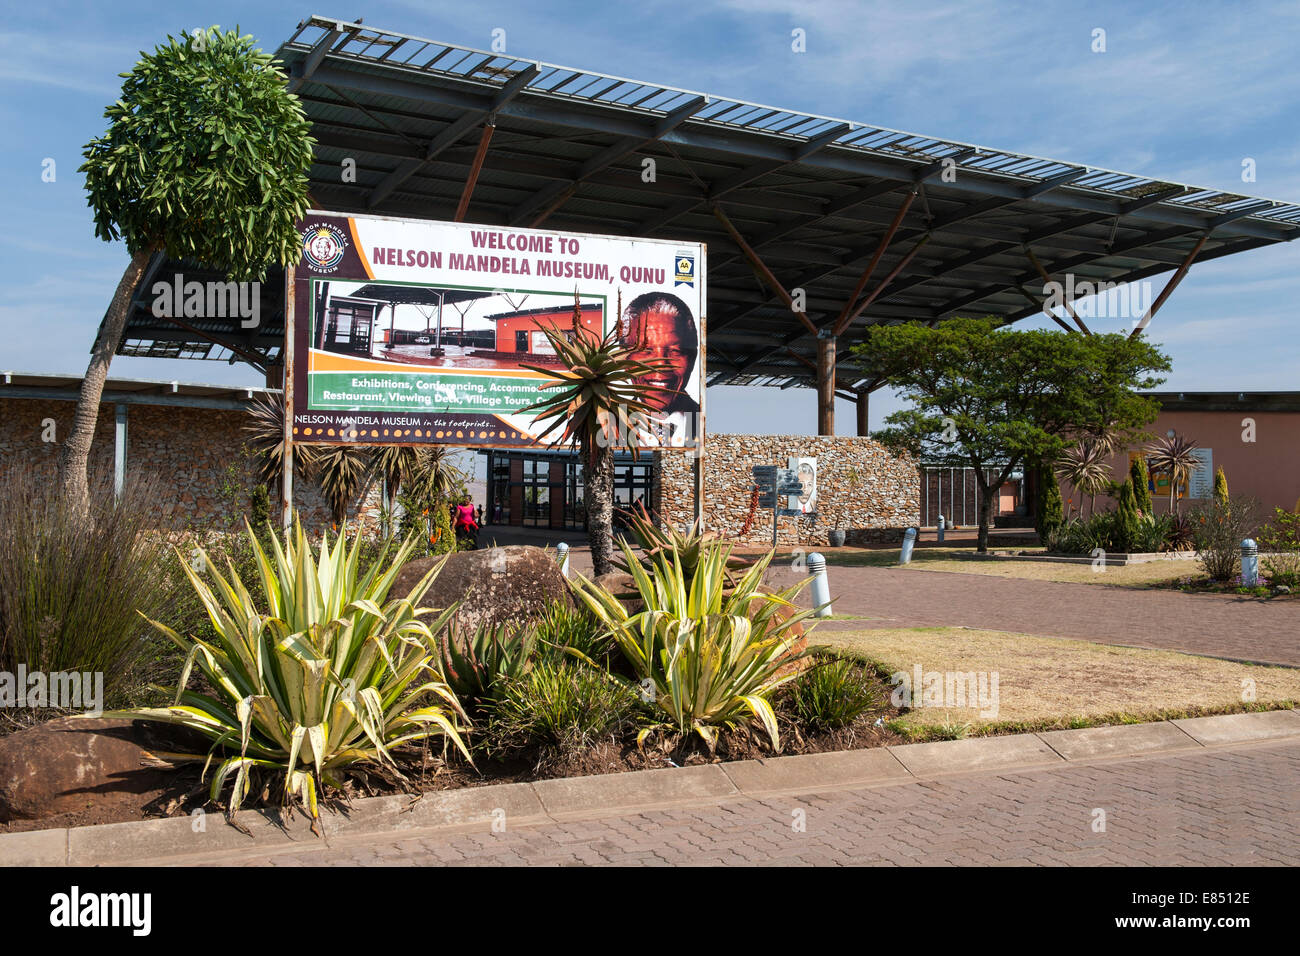 The Nelson Mandela Museum in Qunu, Eastern Cape Province, South Africa. - Stock Image